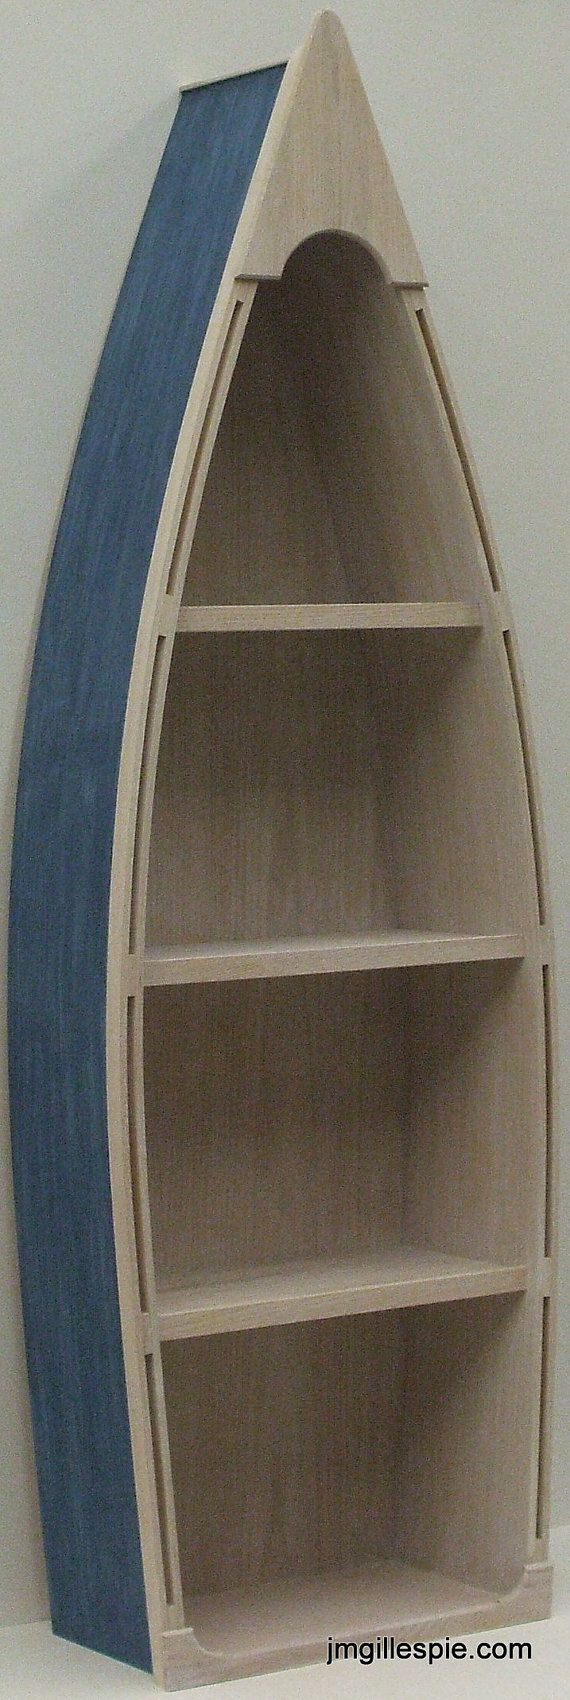 5 Foot blue row Boat Bookshelf Bookcase shelves skiff schooner canoe shelf nautical man cave Dorey kids room on Etsy, $179.05